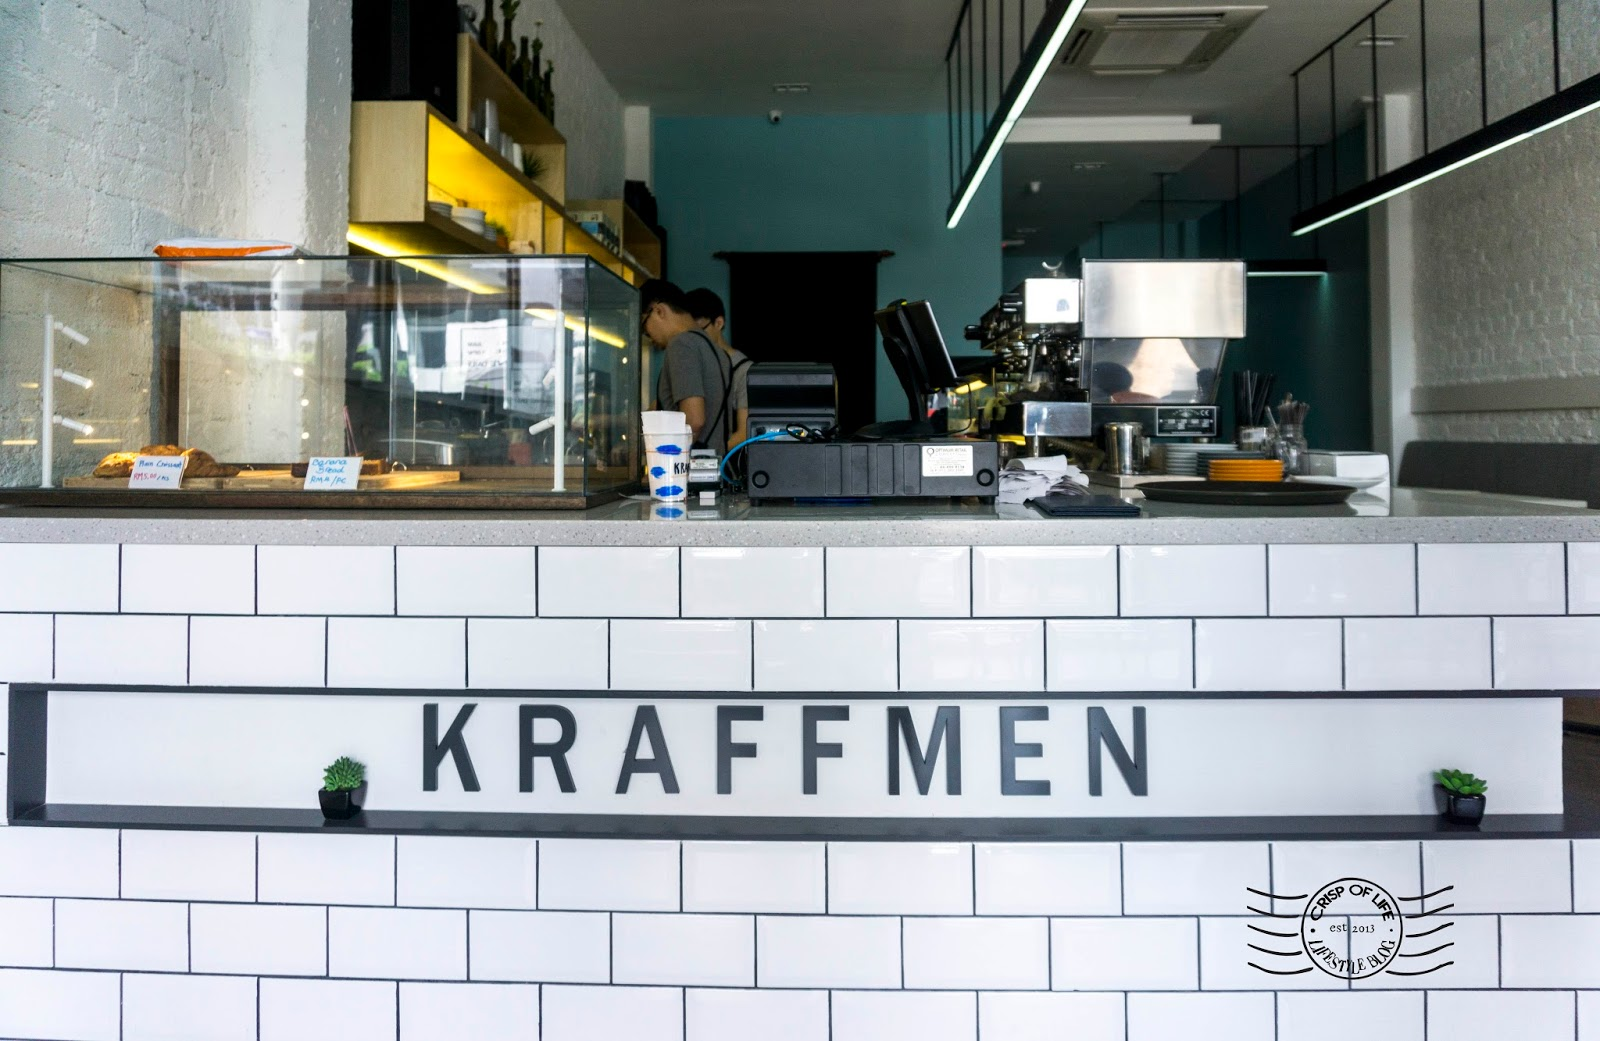 Cafe in Penang Kraffmen